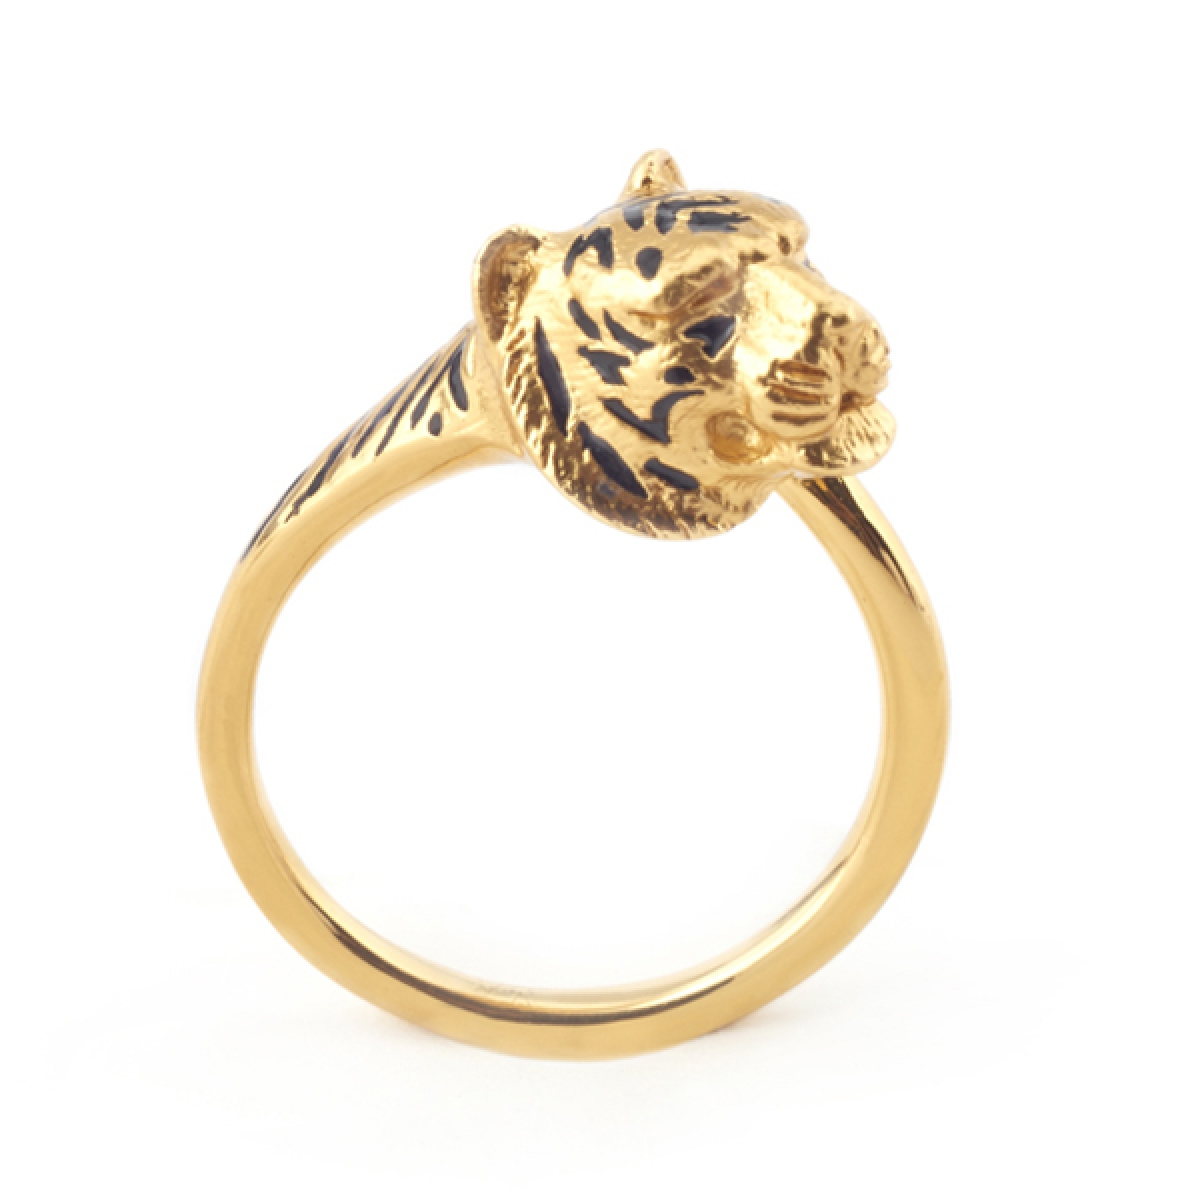 Tiger Tail Ring